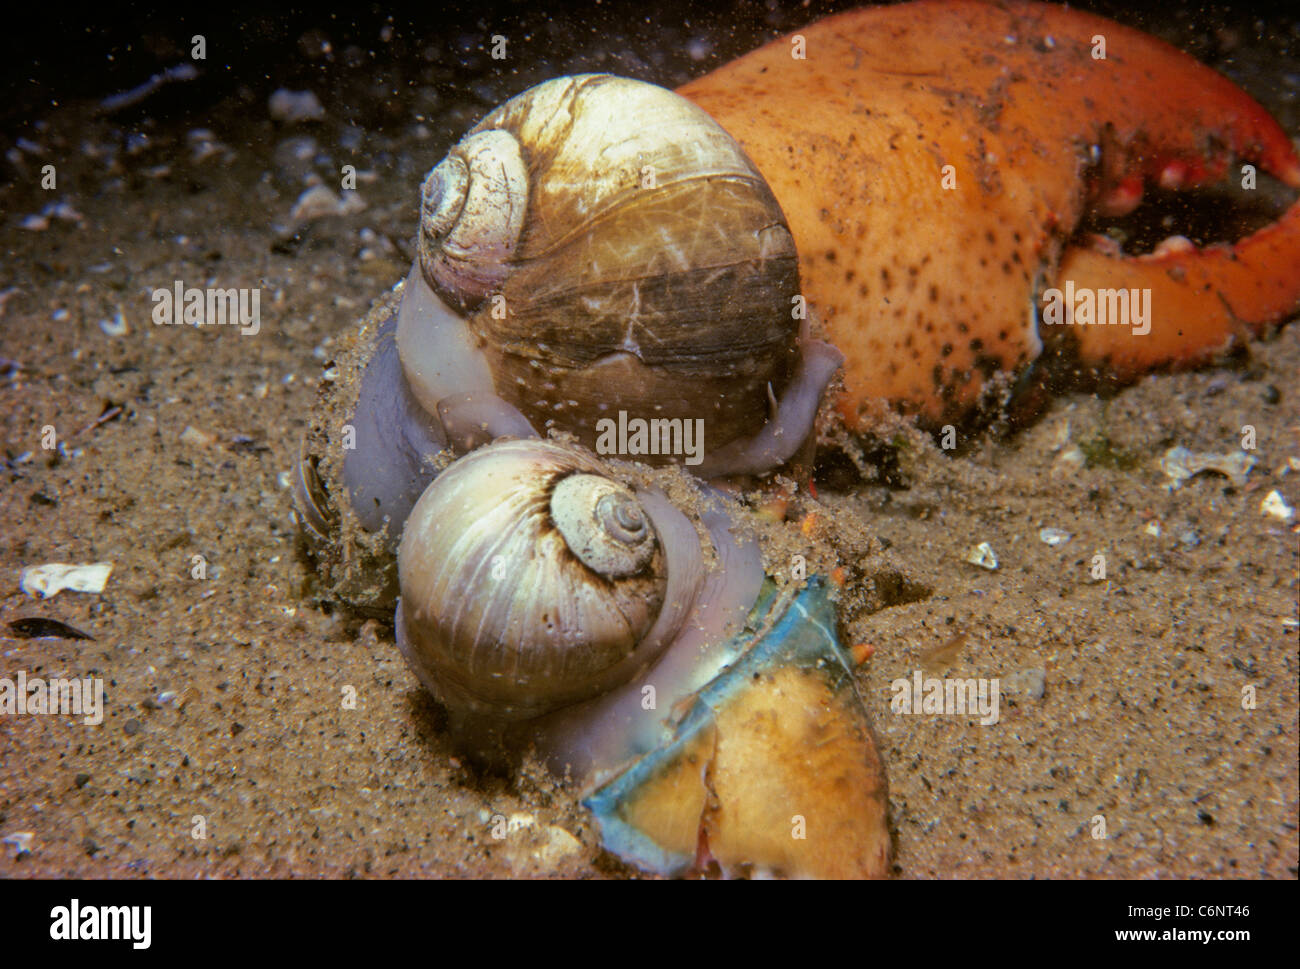 Northern moon Snails (Euspira heros) scavenging on a lobster claw. New England, Atlantic Ocean Stock Photo